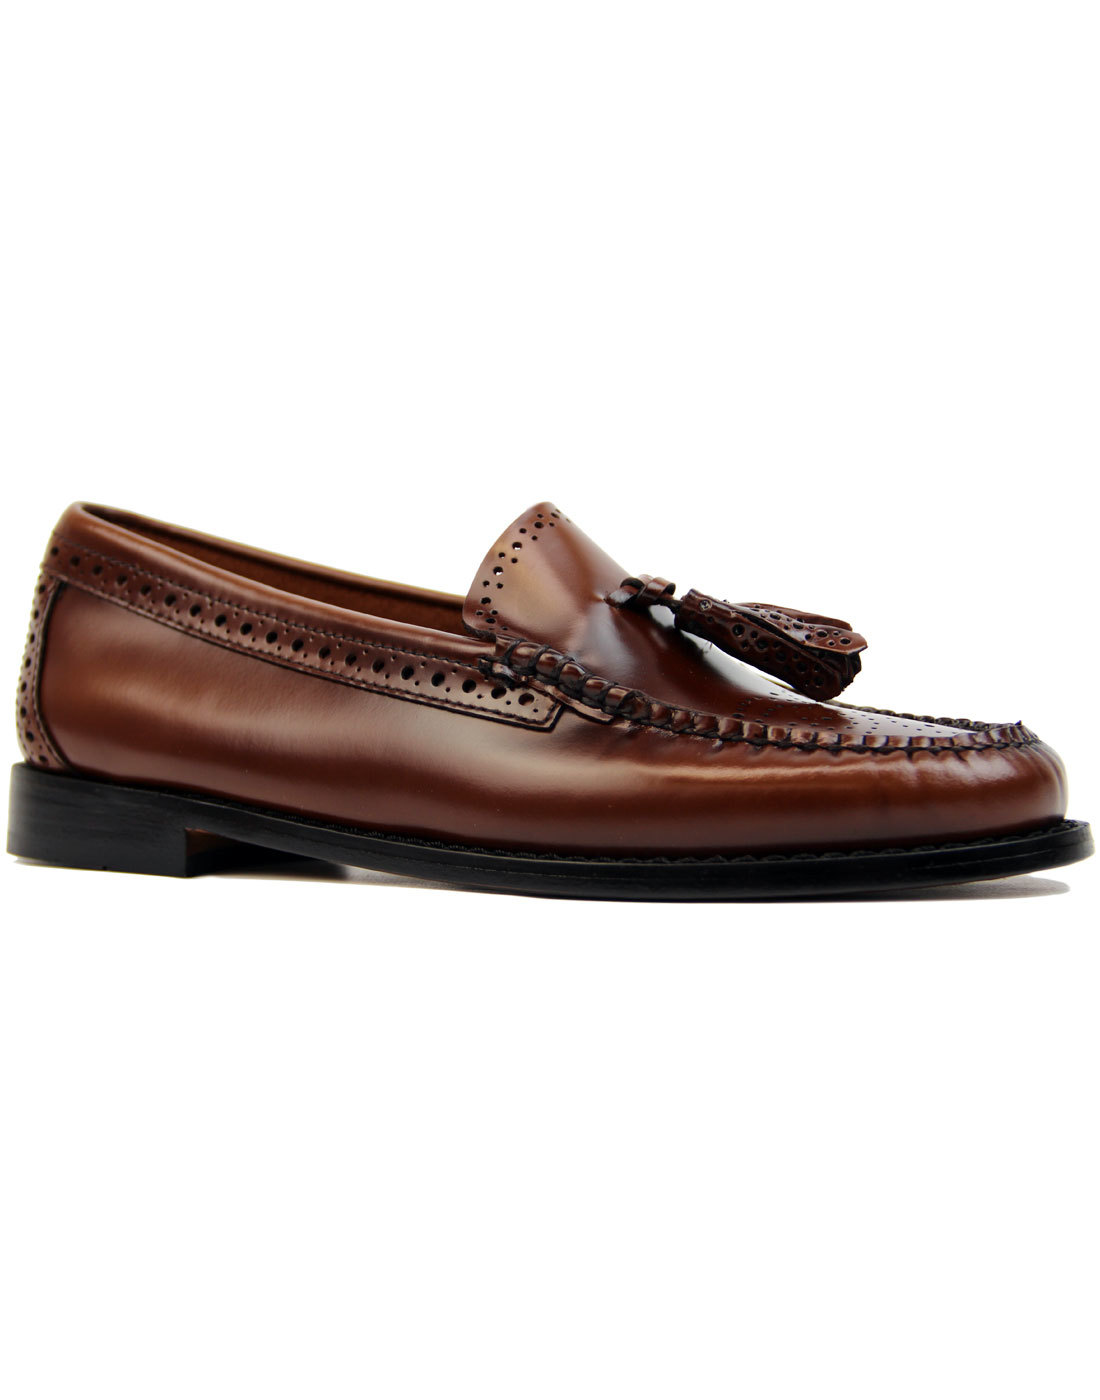 Estelle BASS WEEJUNS Retro Mod Brogue Loafers (C)